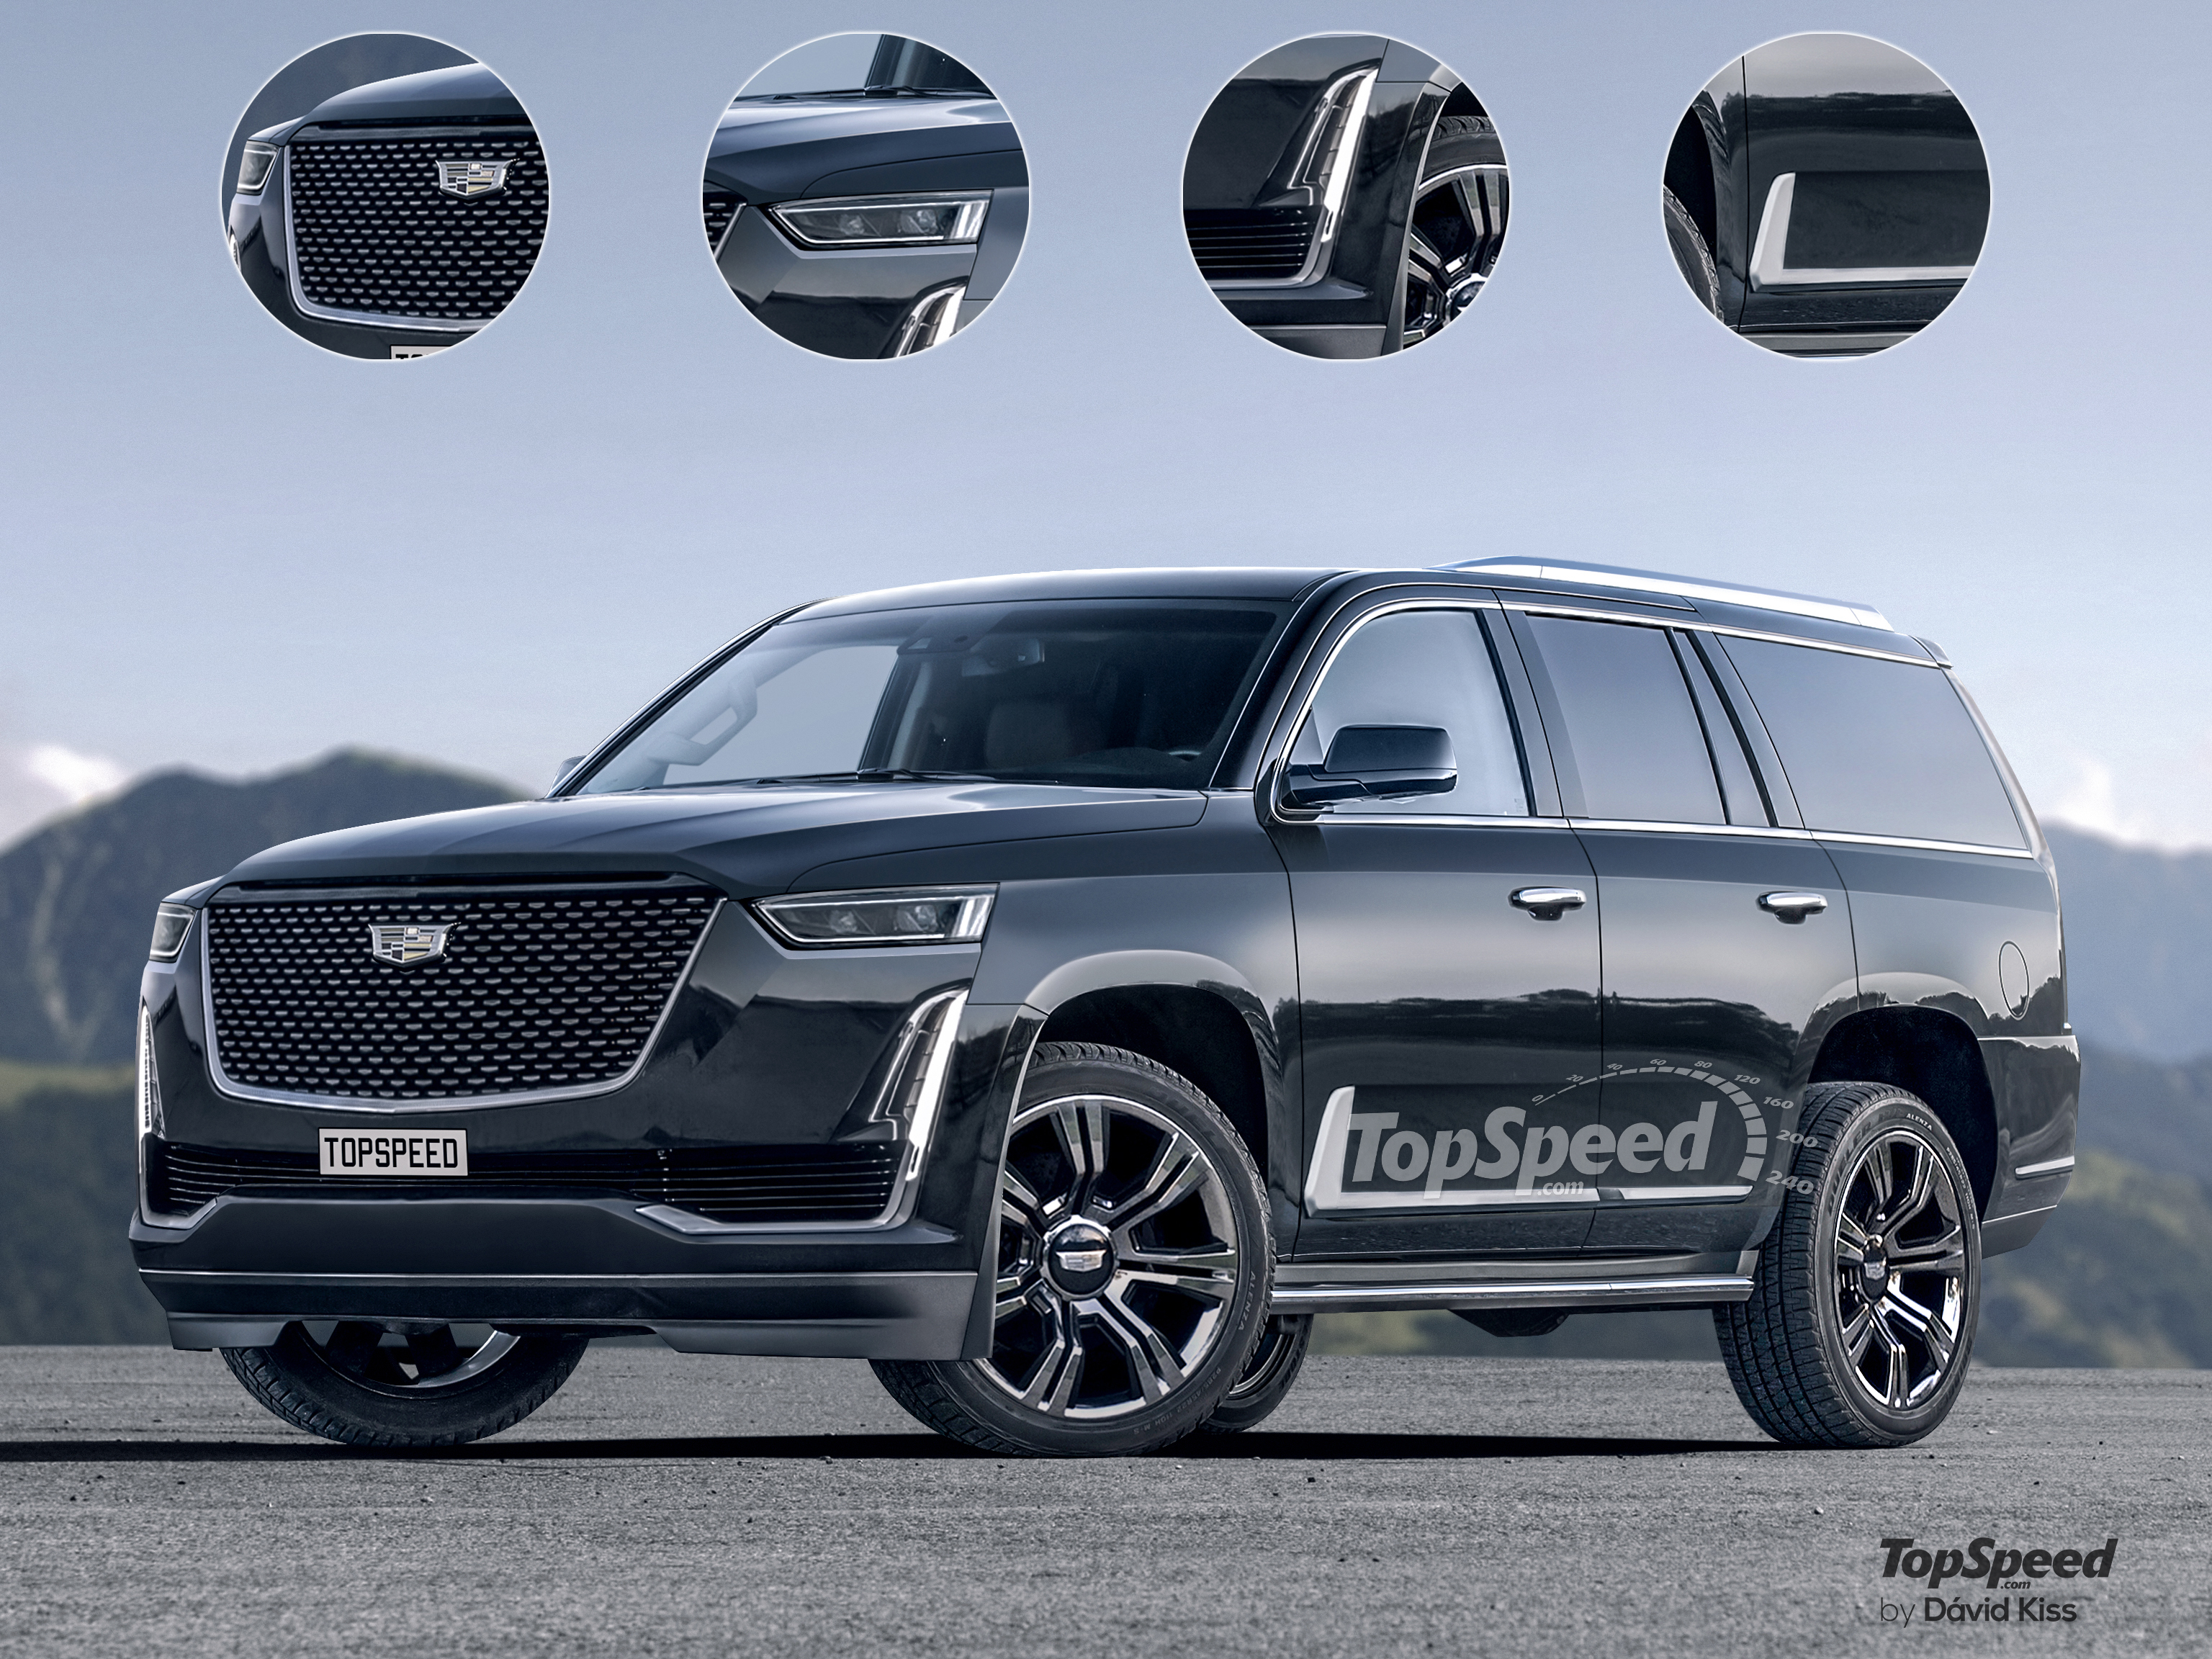 31 All New 2020 Cadillac Escalade Images Rumors by 2020 Cadillac Escalade Images